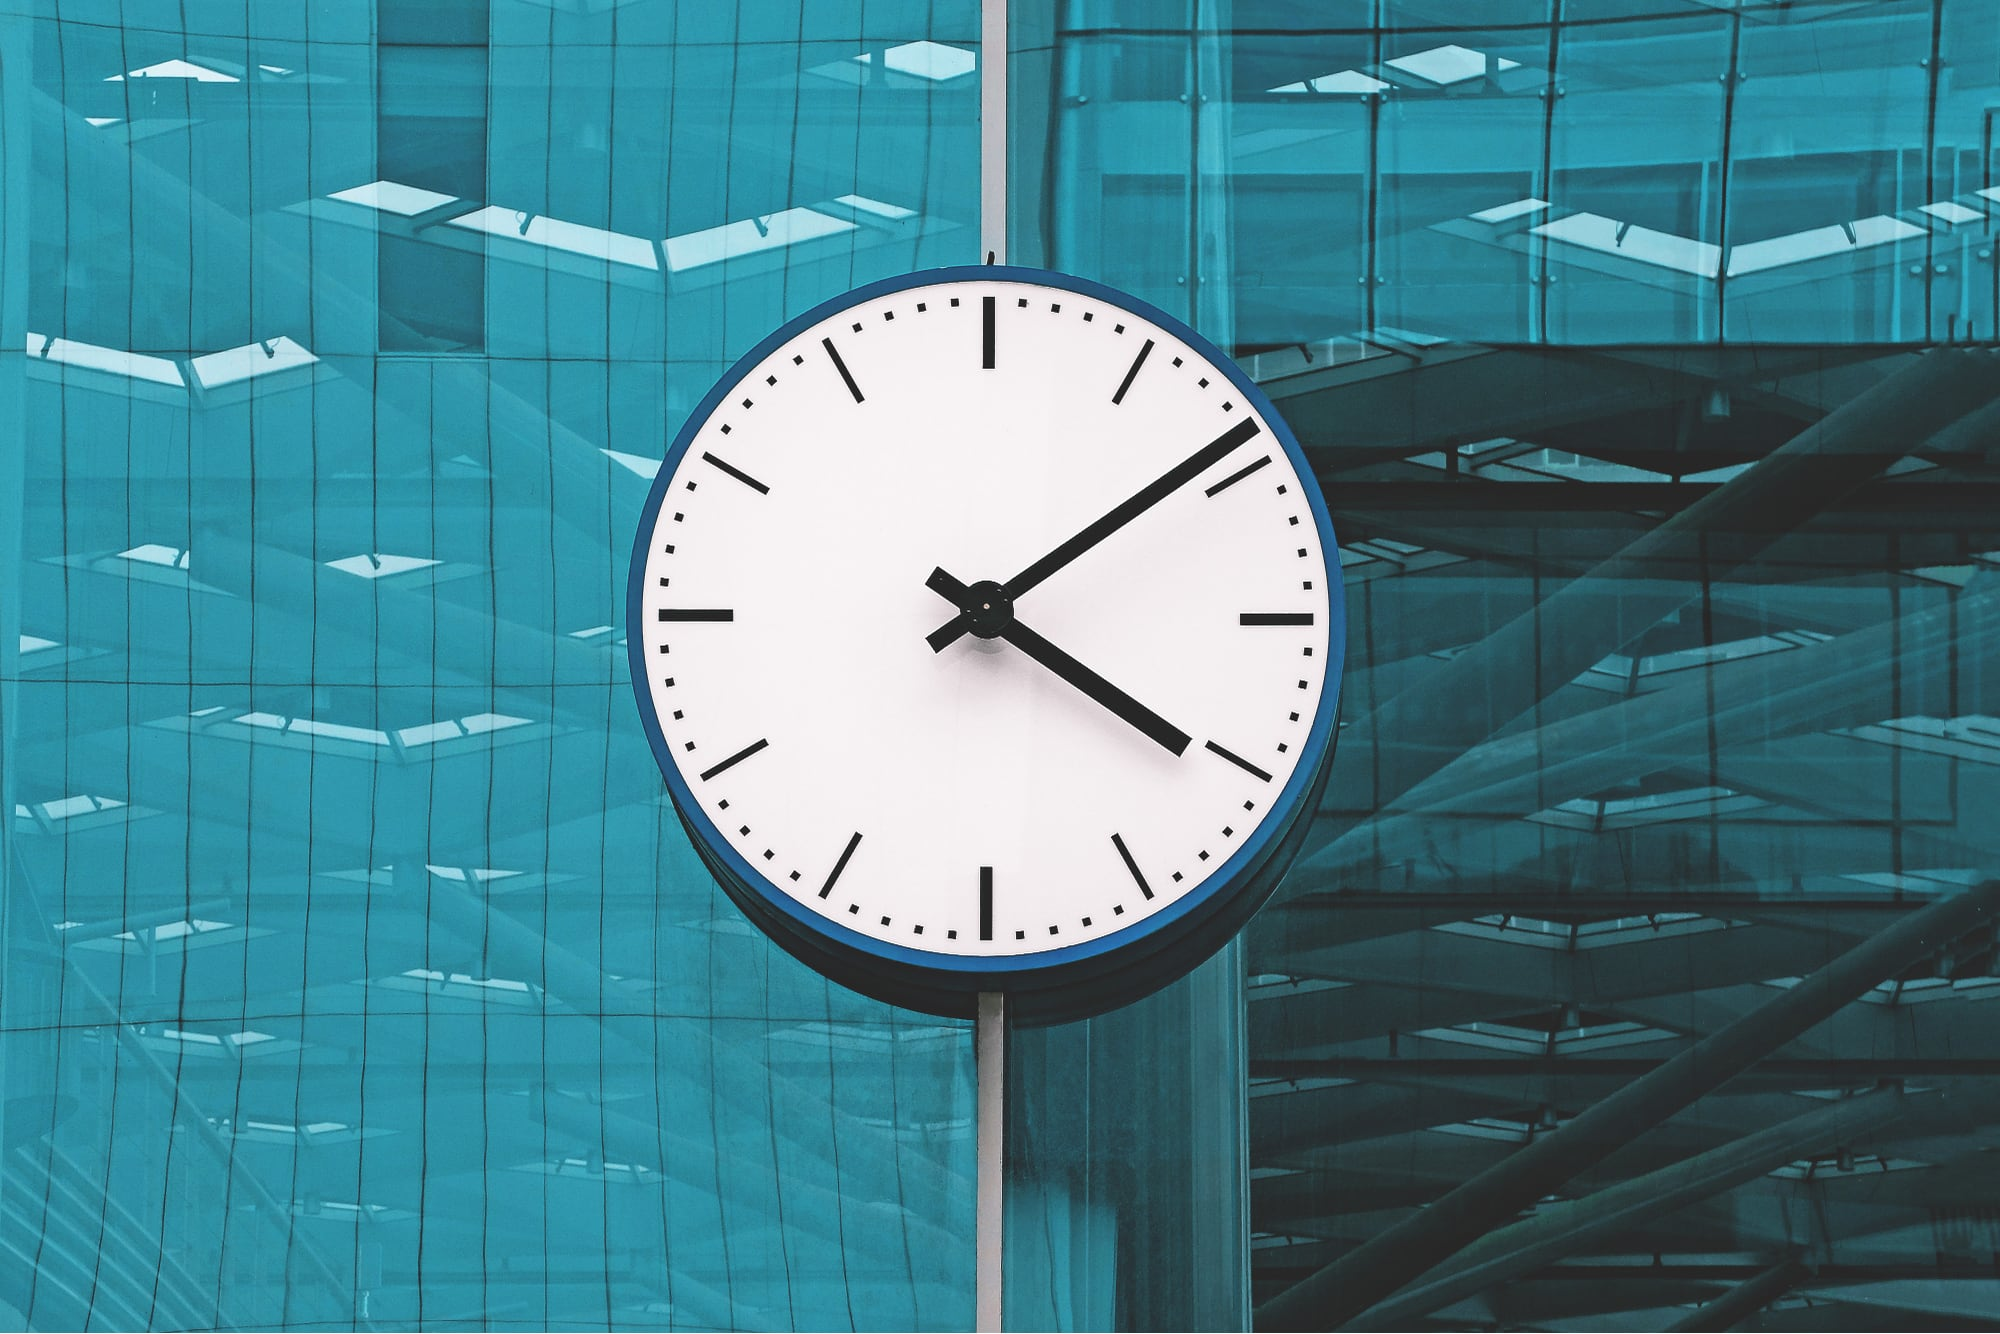 Department Managers Speak About Time